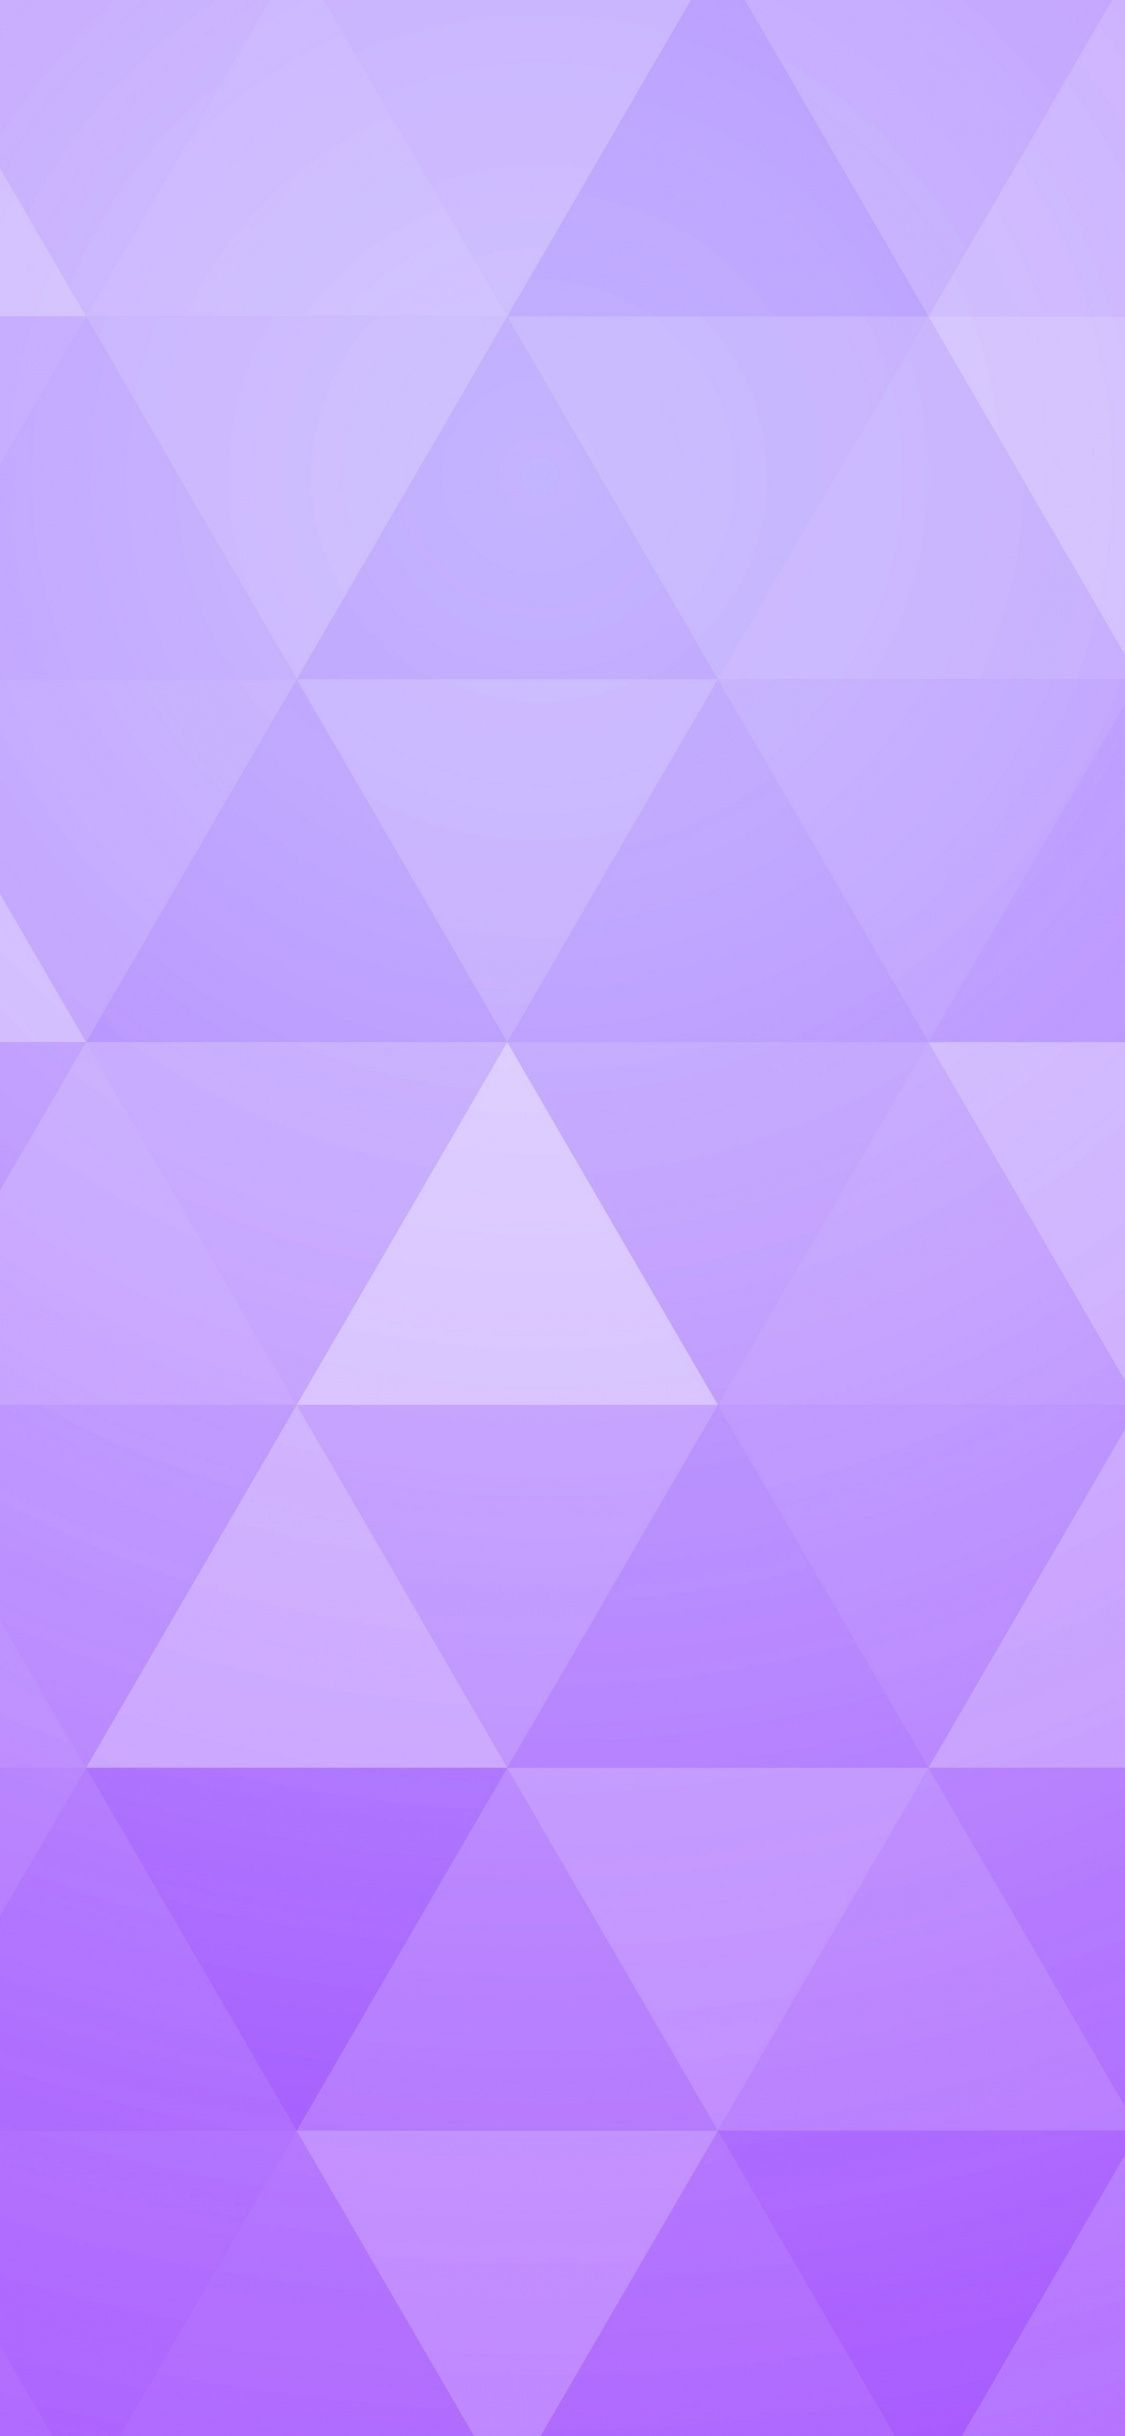 1125x2436 Download 1125x2436 wallpaper triangles, minimal, abstract ...